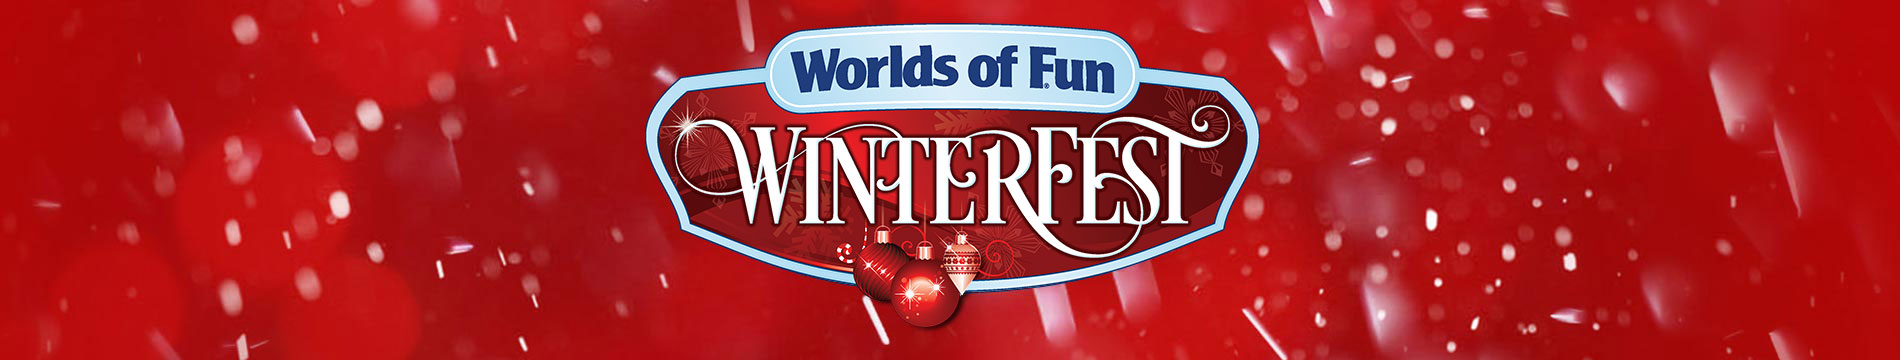 WinterFest Group Sales at Worlds of Fun